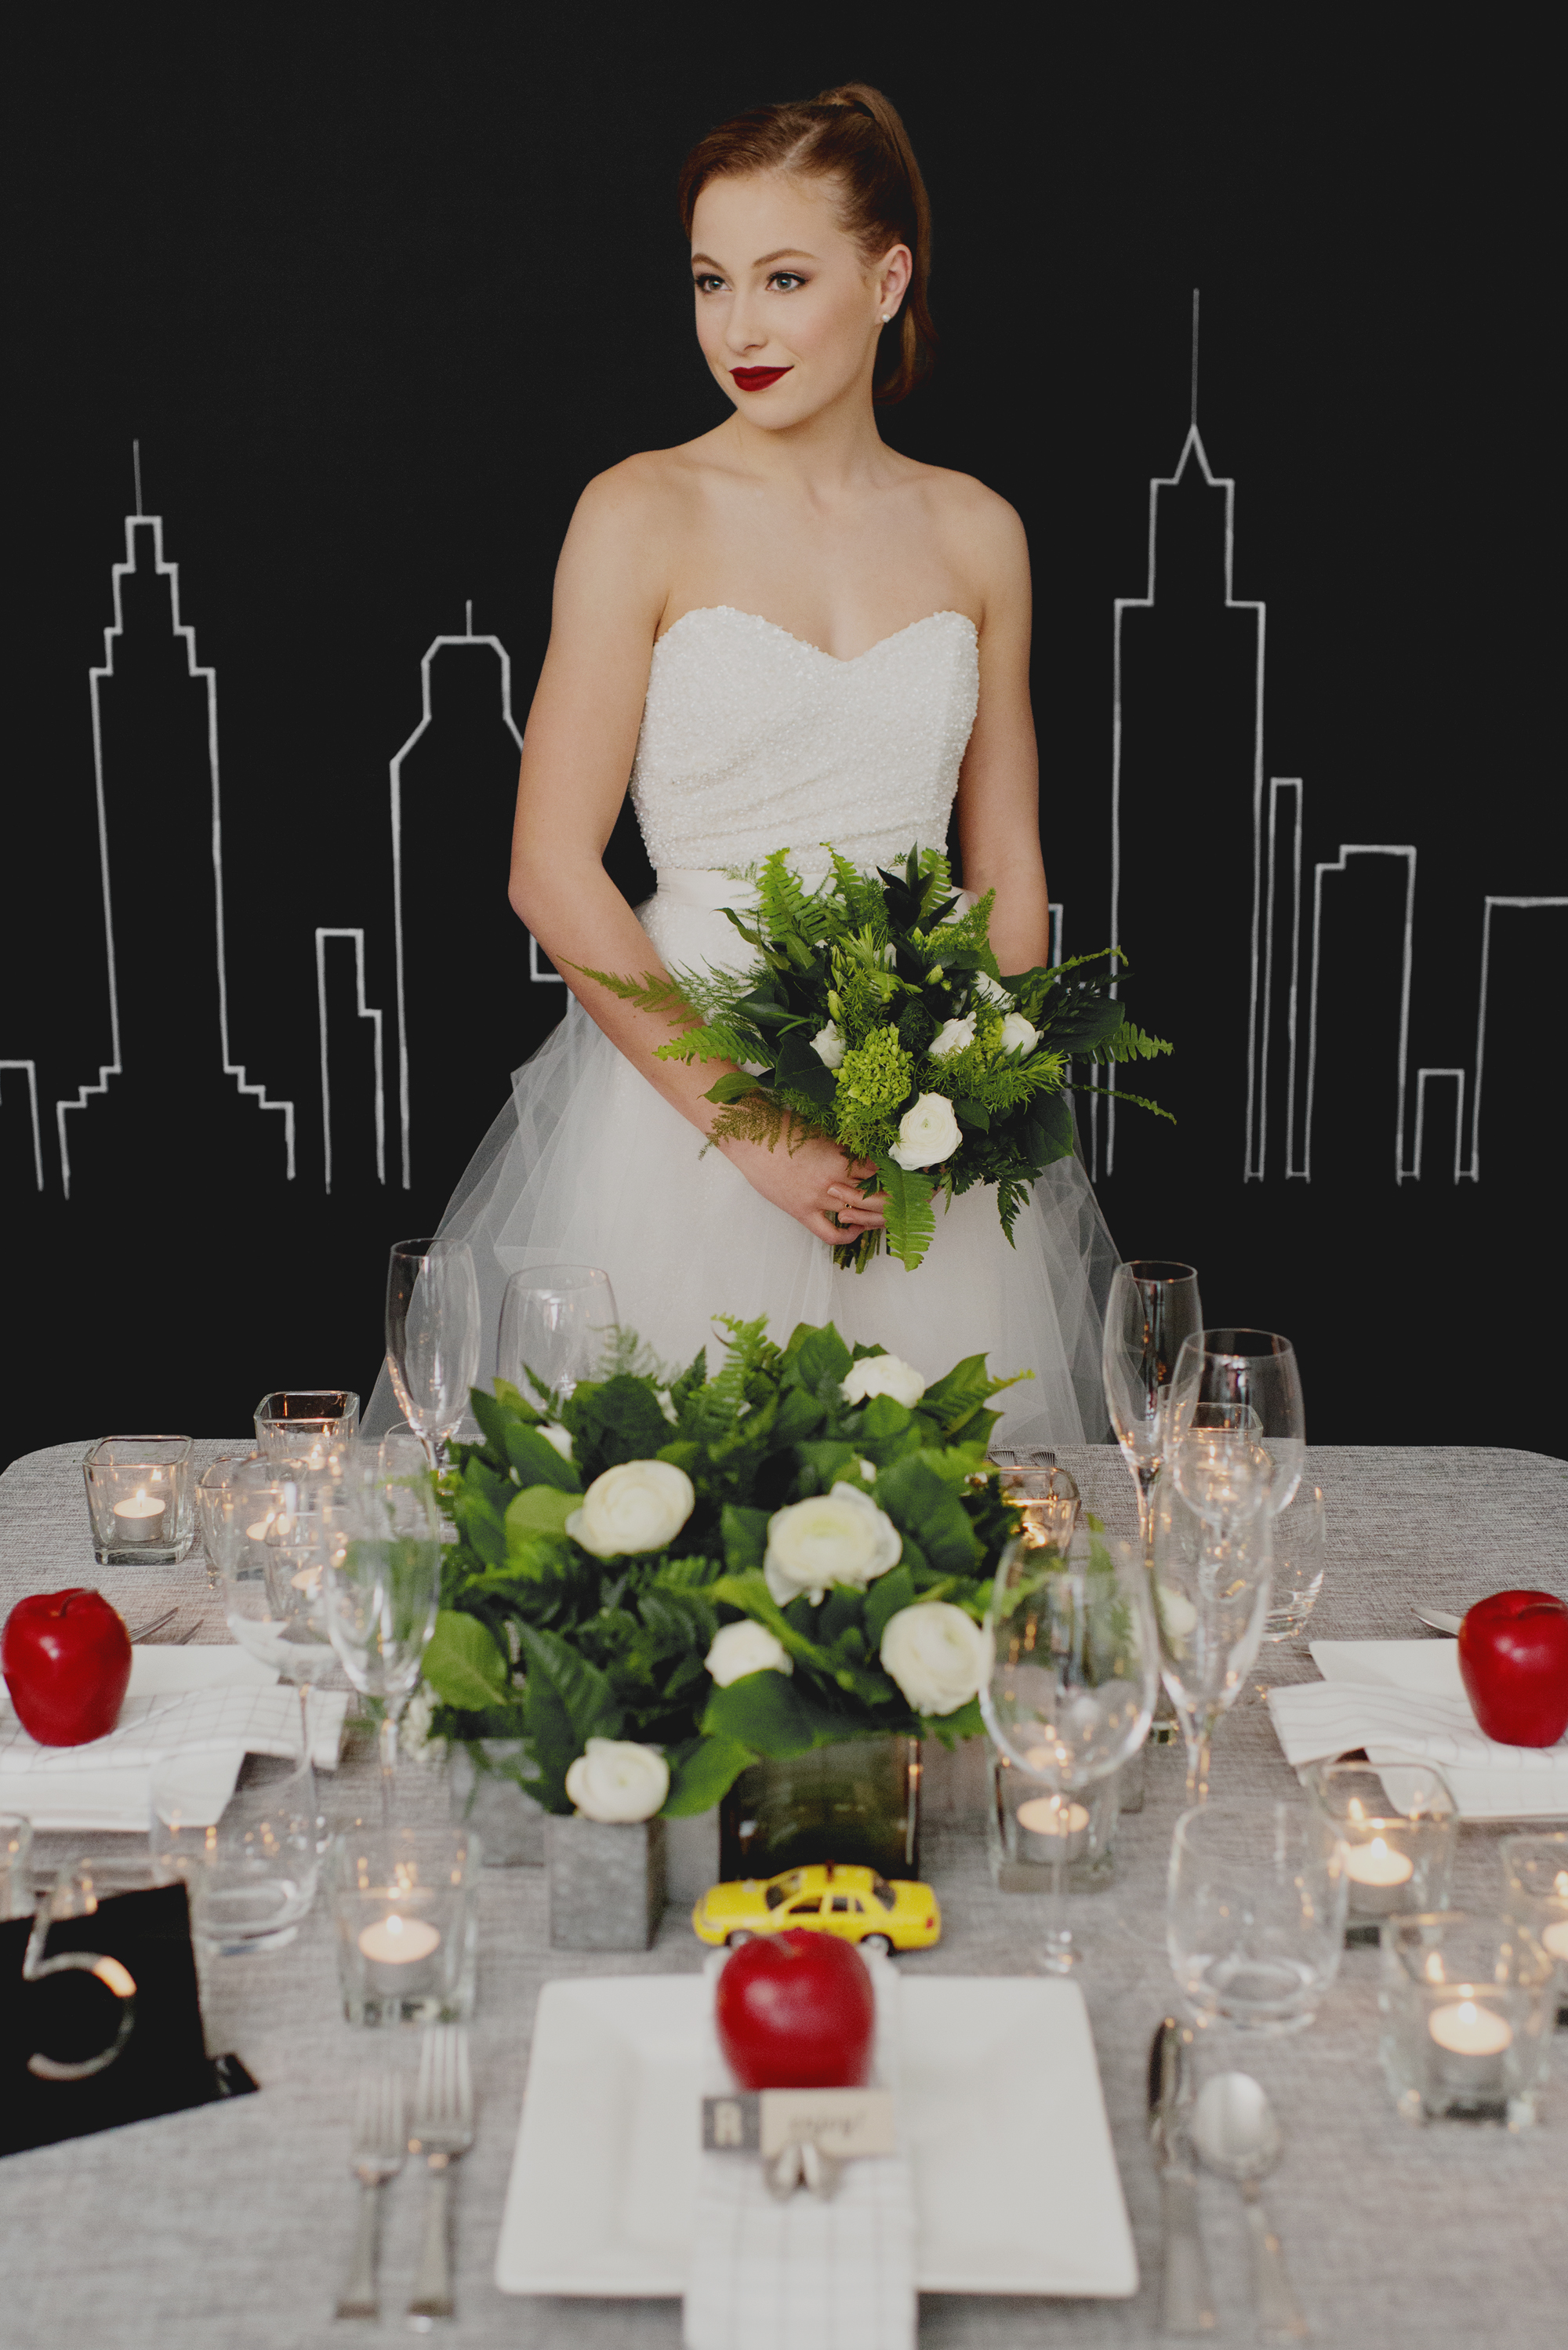 NEW YORK WEDDING - WEDDINGSTAR MAGAZINE